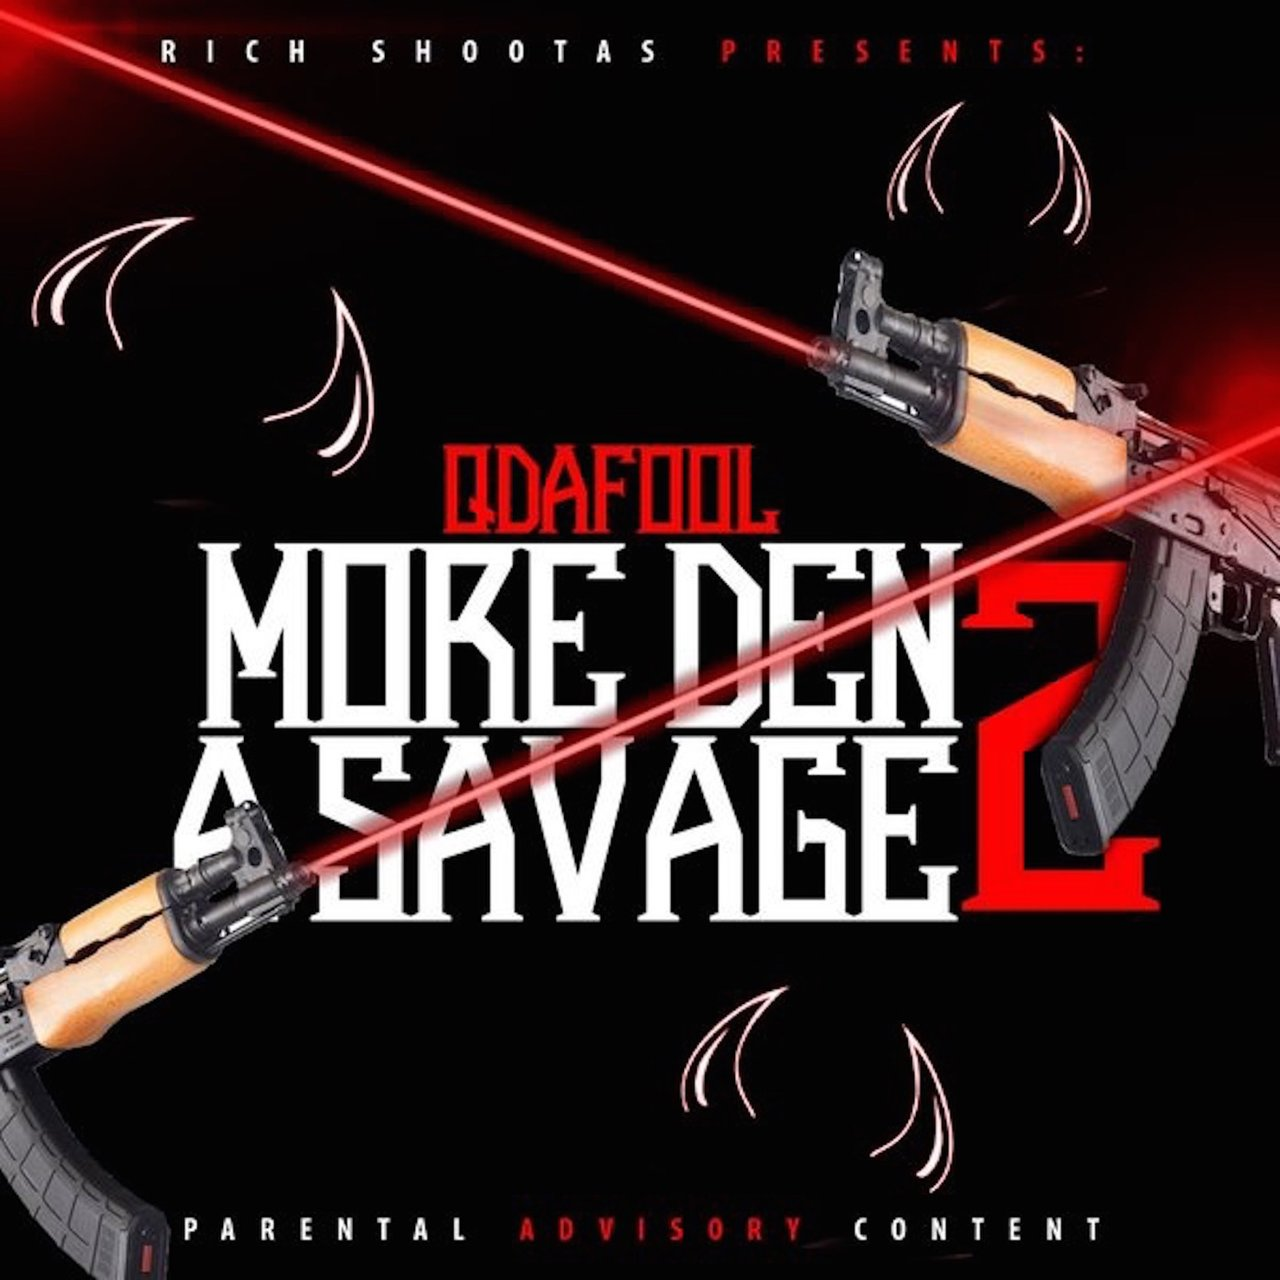 More Den a Savage 2